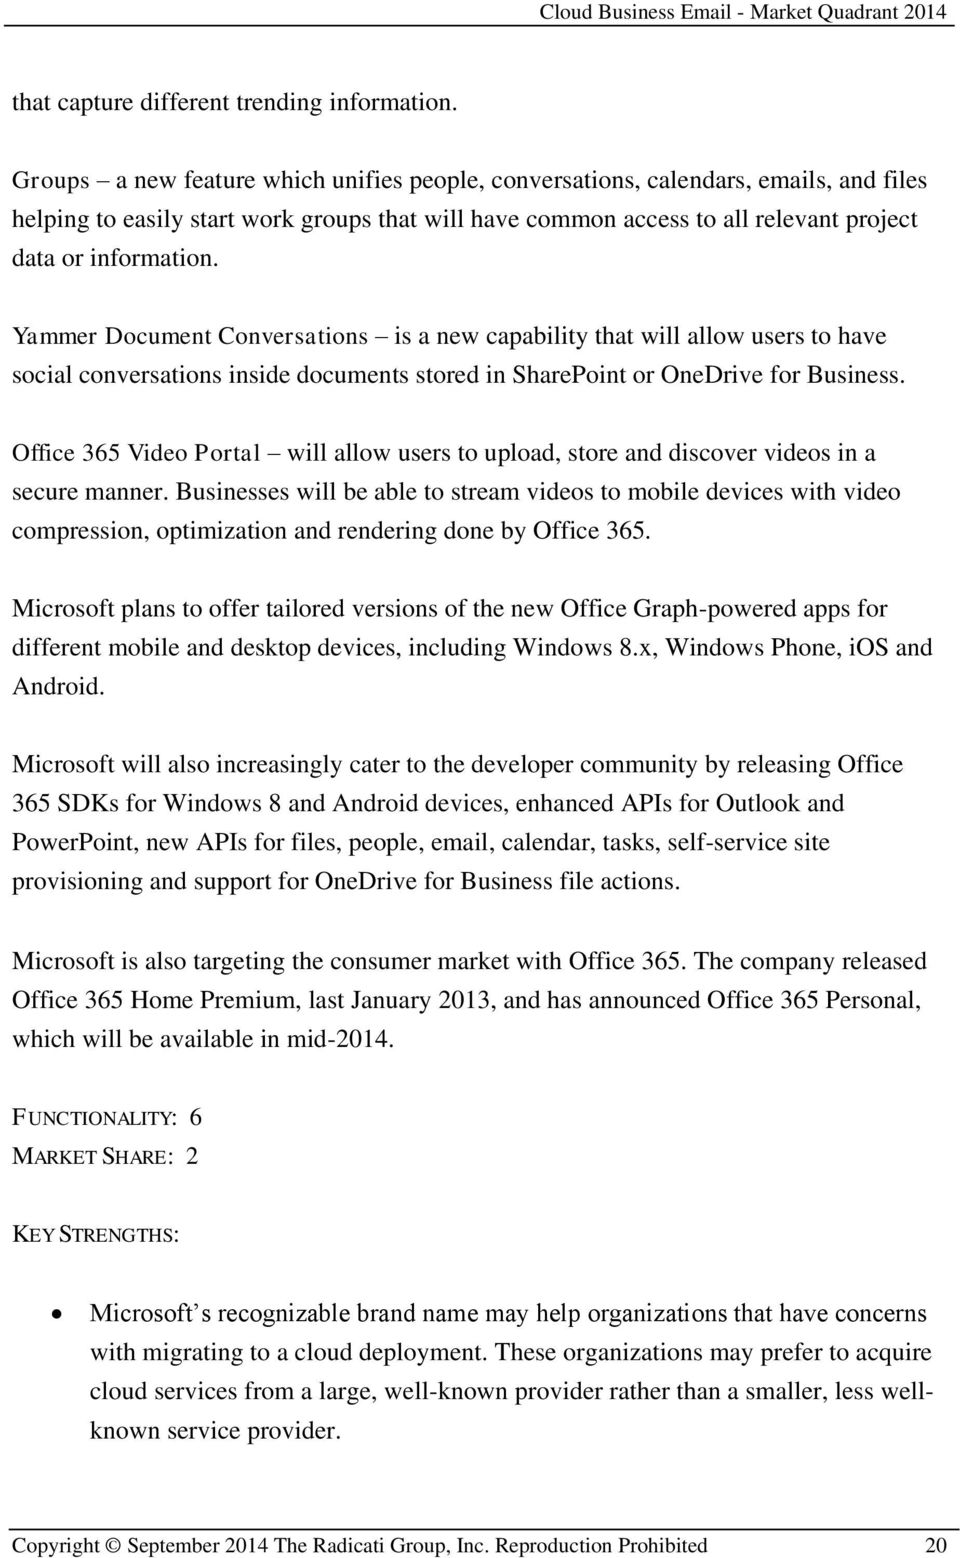 Yammer Document Conversations is a new capability that will allow users to have social conversations inside documents stored in SharePoint or OneDrive for Business.